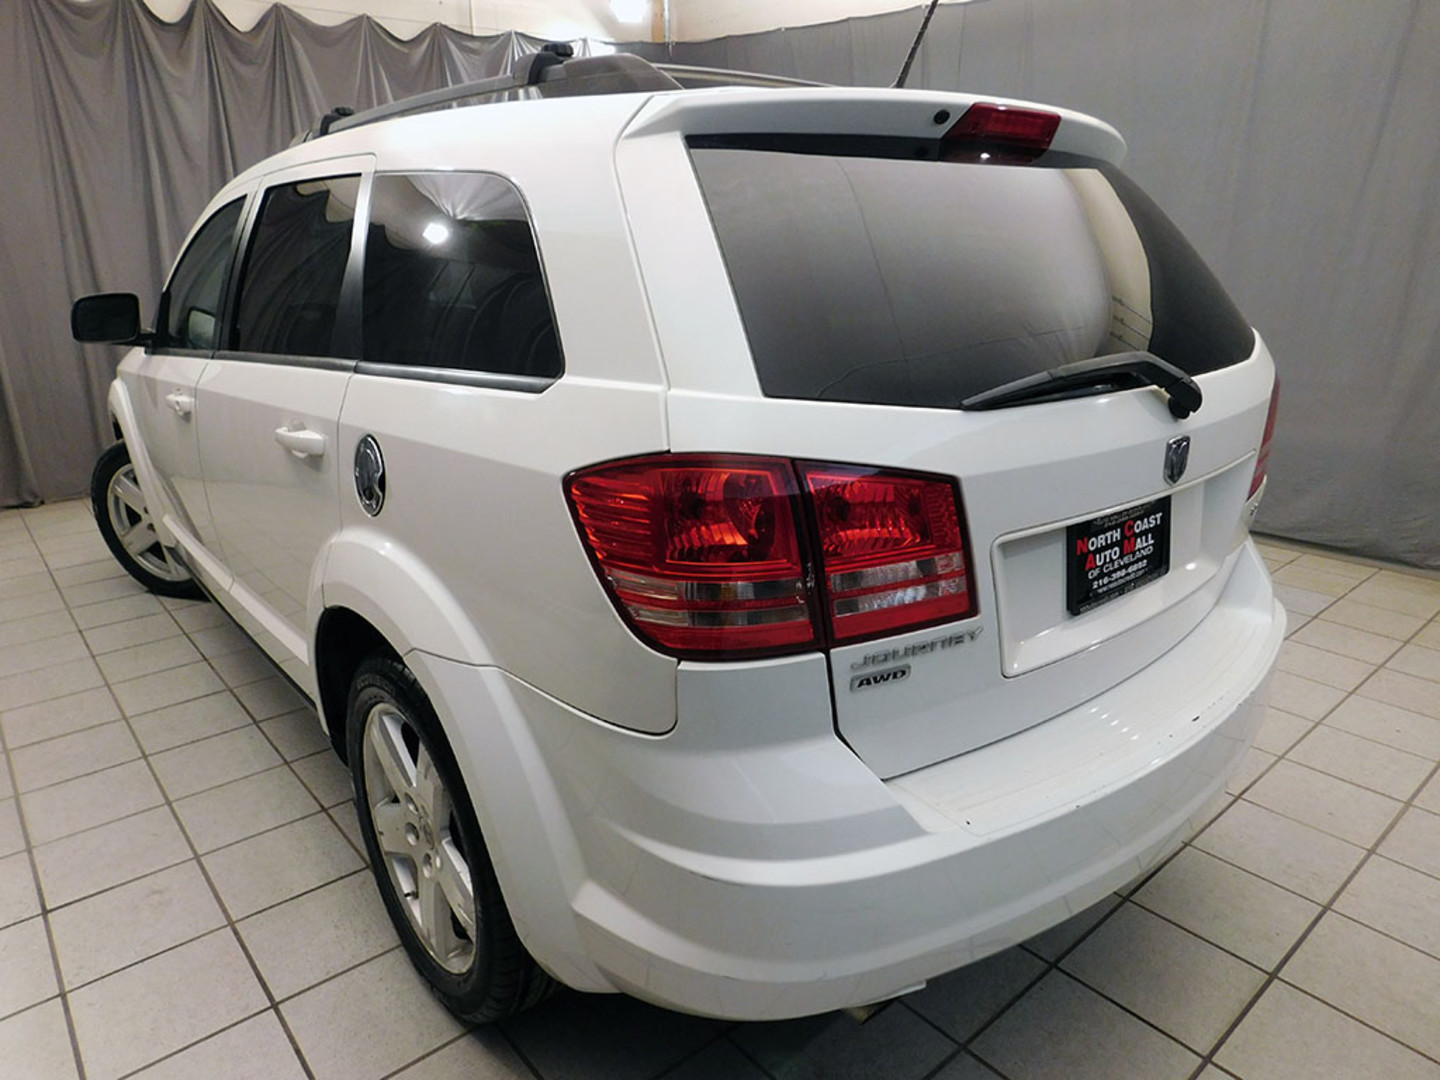 2009 dodge journey sxt as low as 999 down city ohio north coast auto mall of cleveland. Black Bedroom Furniture Sets. Home Design Ideas